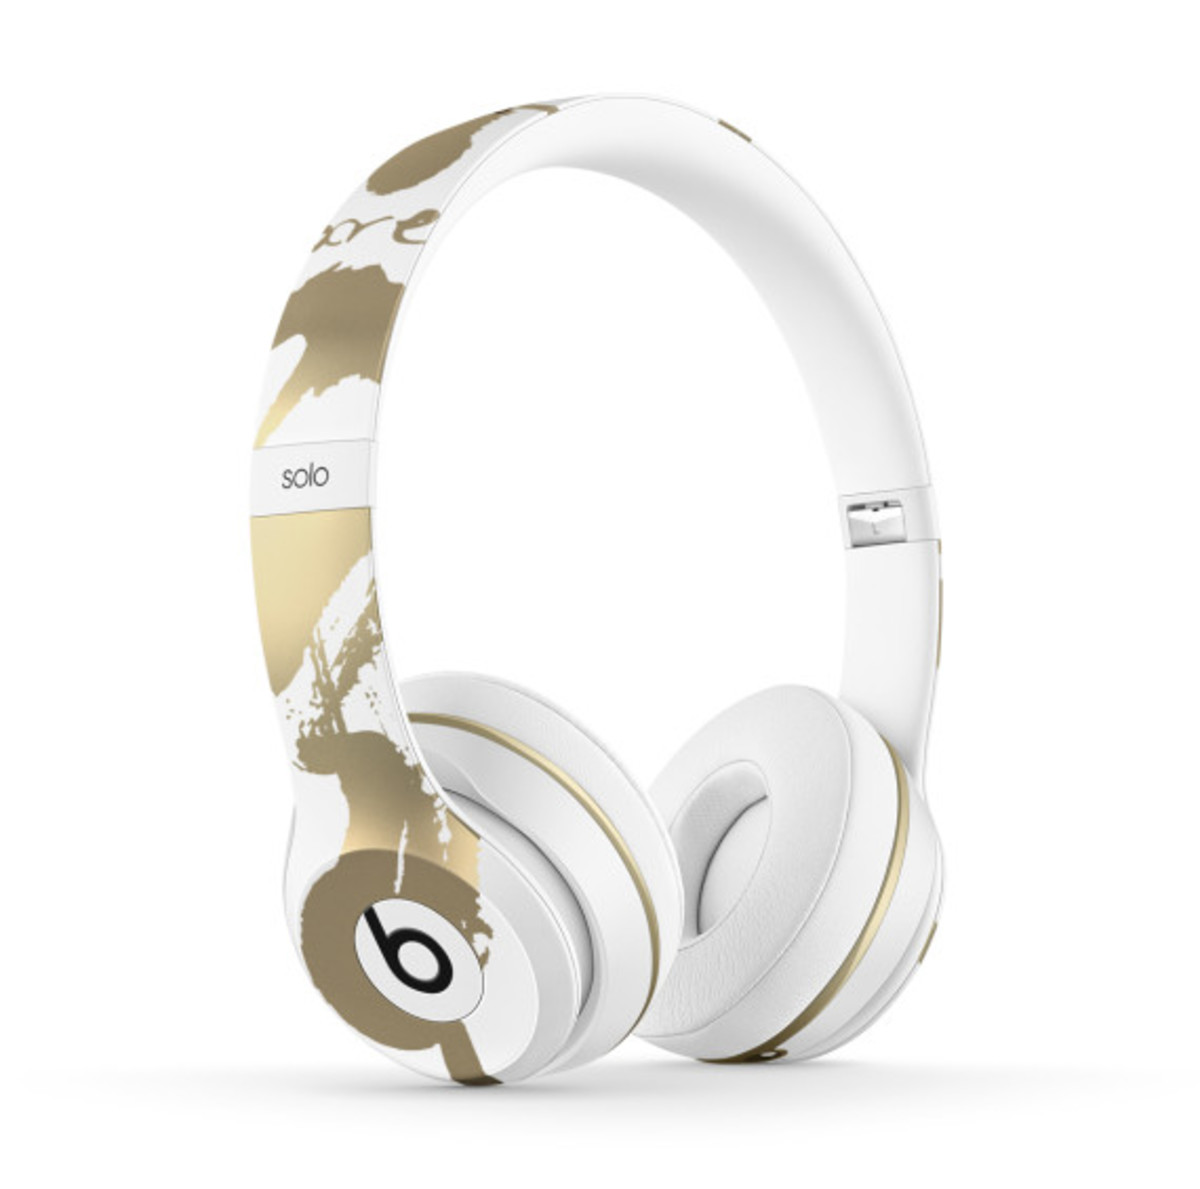 chen-man-beats-by-dre-chinese-new-year-solo2-headphones-03